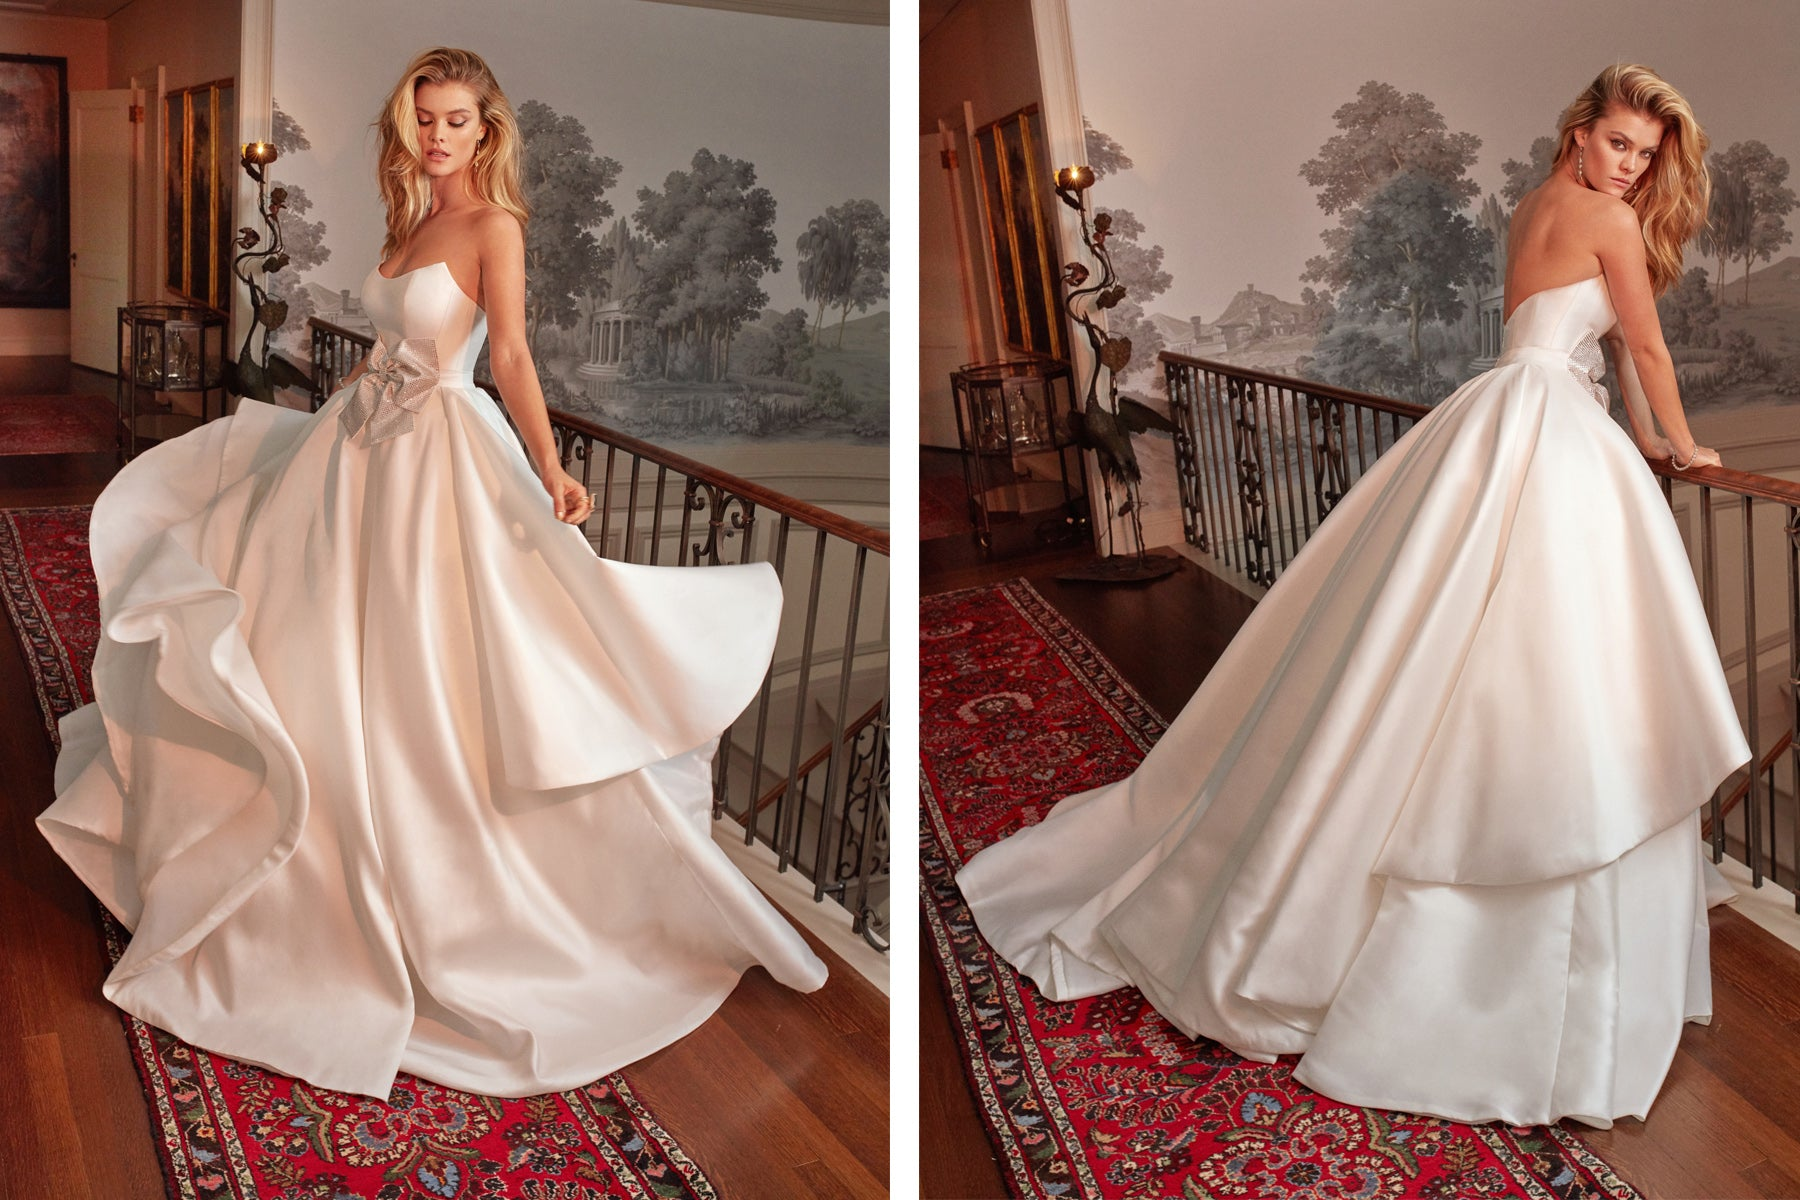 Eternal_Bridal_Wedding_Dress_Galia_Lahav_Haute_Couture_Queen_of_Hearts_Imperia